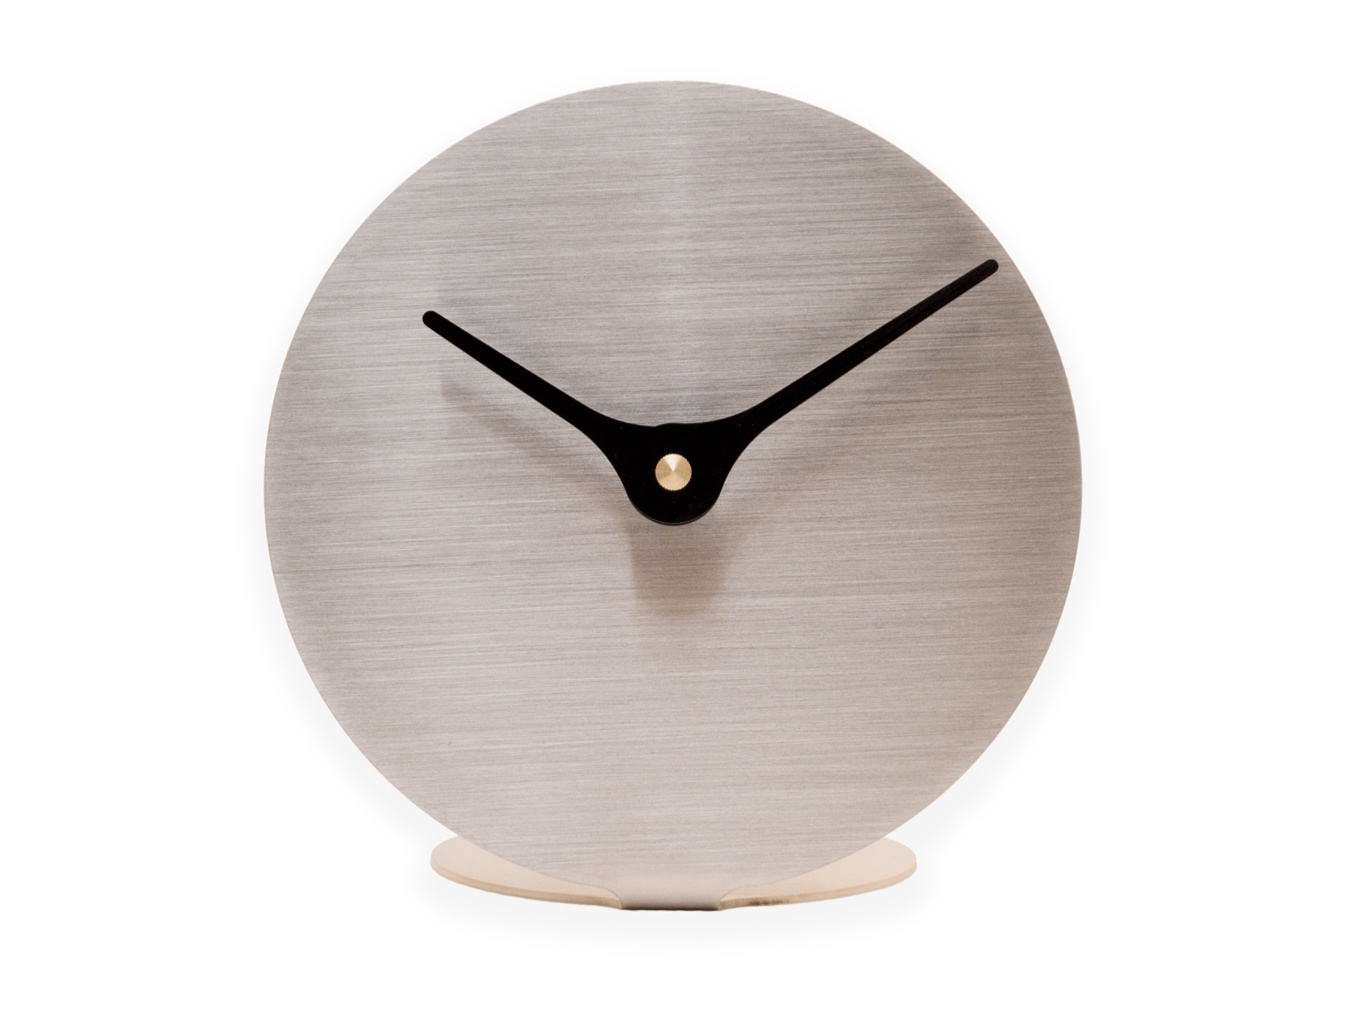 Nordahl+Konings-bordklokke-LTCSS_Lilje+Table+Clock_Stainless+Steel.jpg